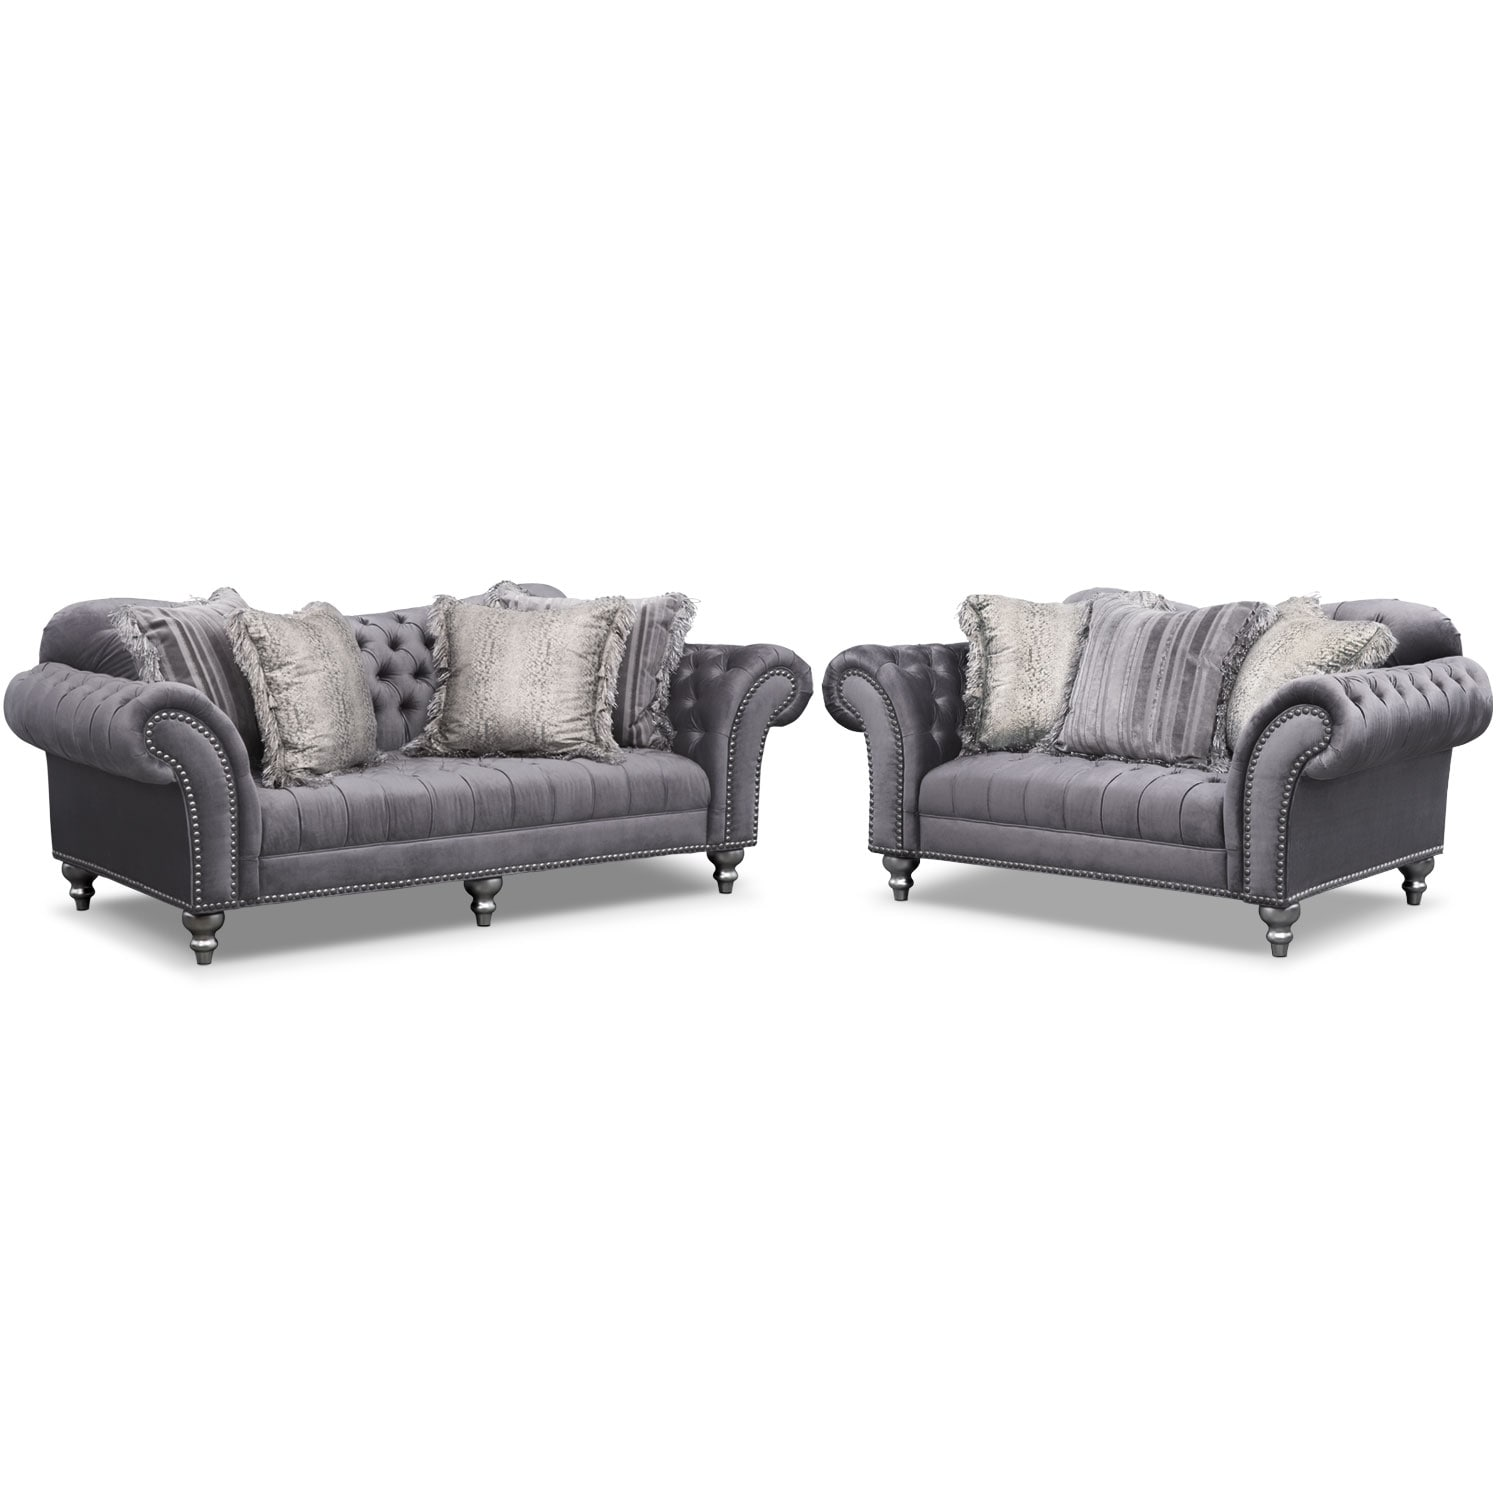 Was $2,189.98 Today $1,751.98 Brittney Sofa And Loveseat Set   Gray Part 39